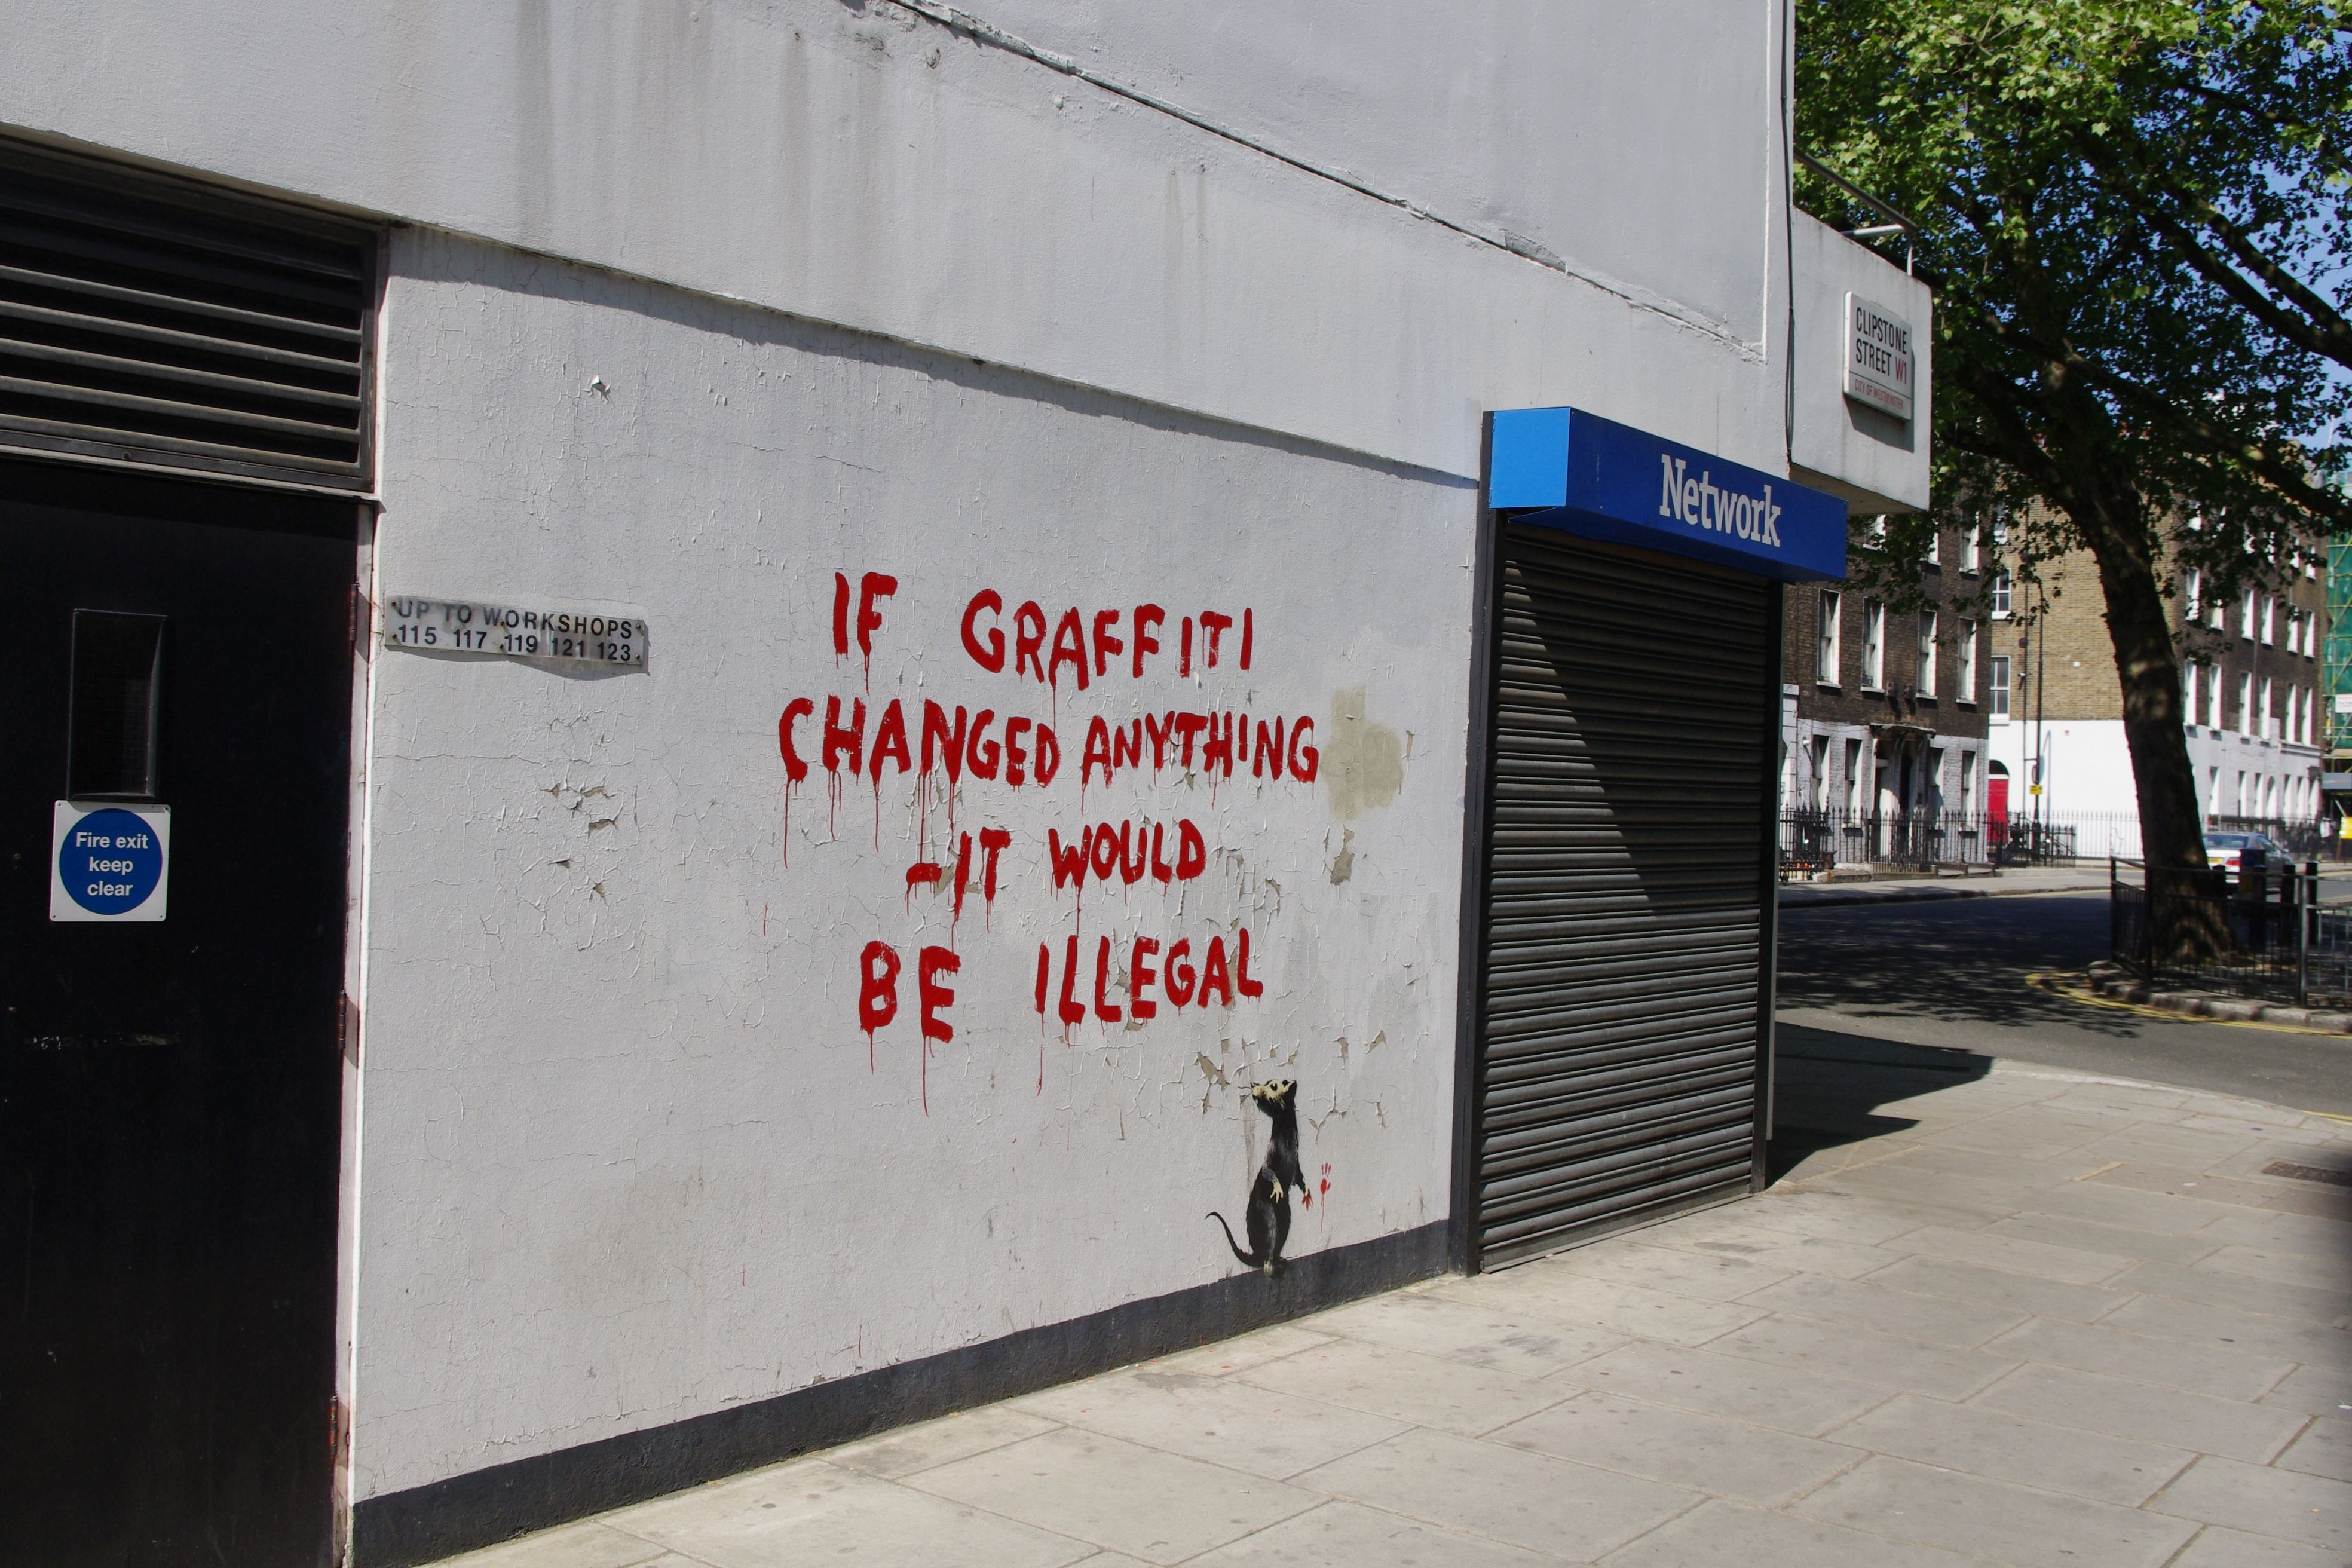 Graffiti on the wall showing the location of nearby streets